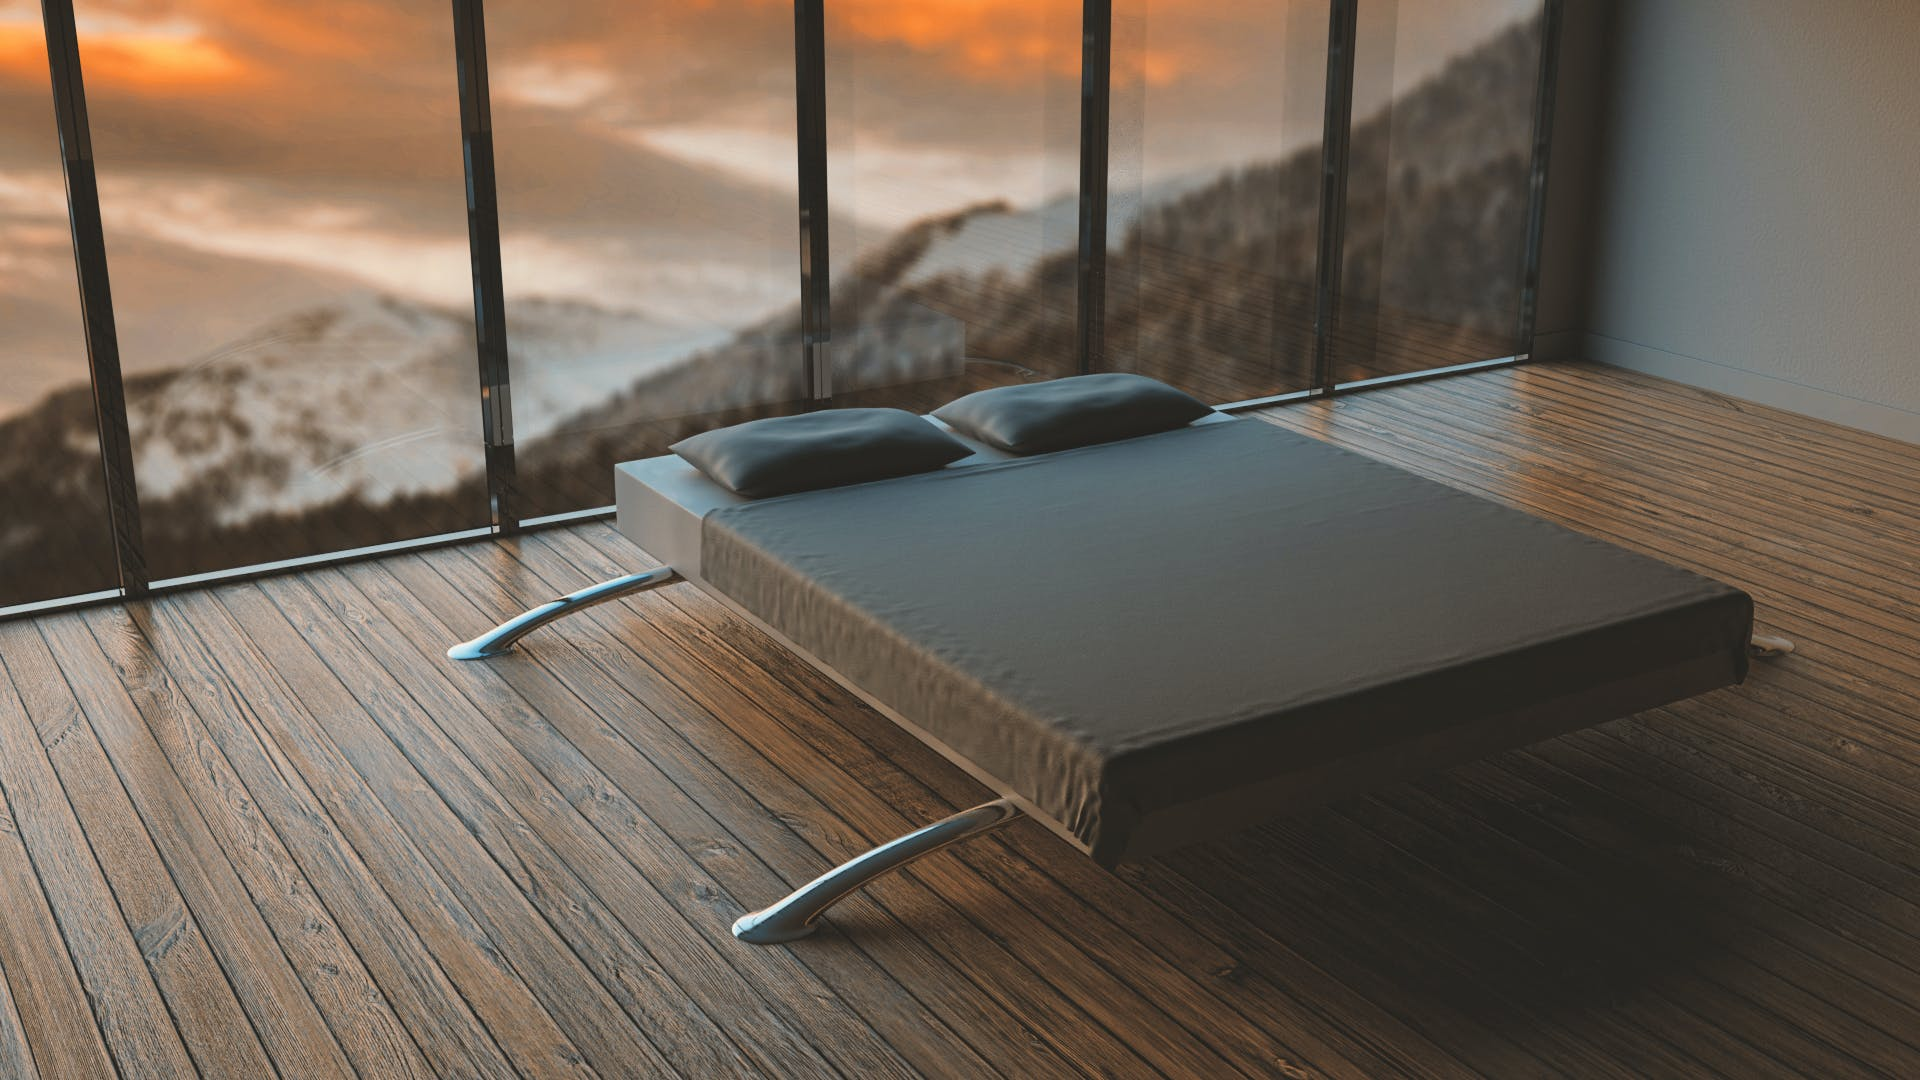 Free stock photo of mountains, bed, bedroom, modern